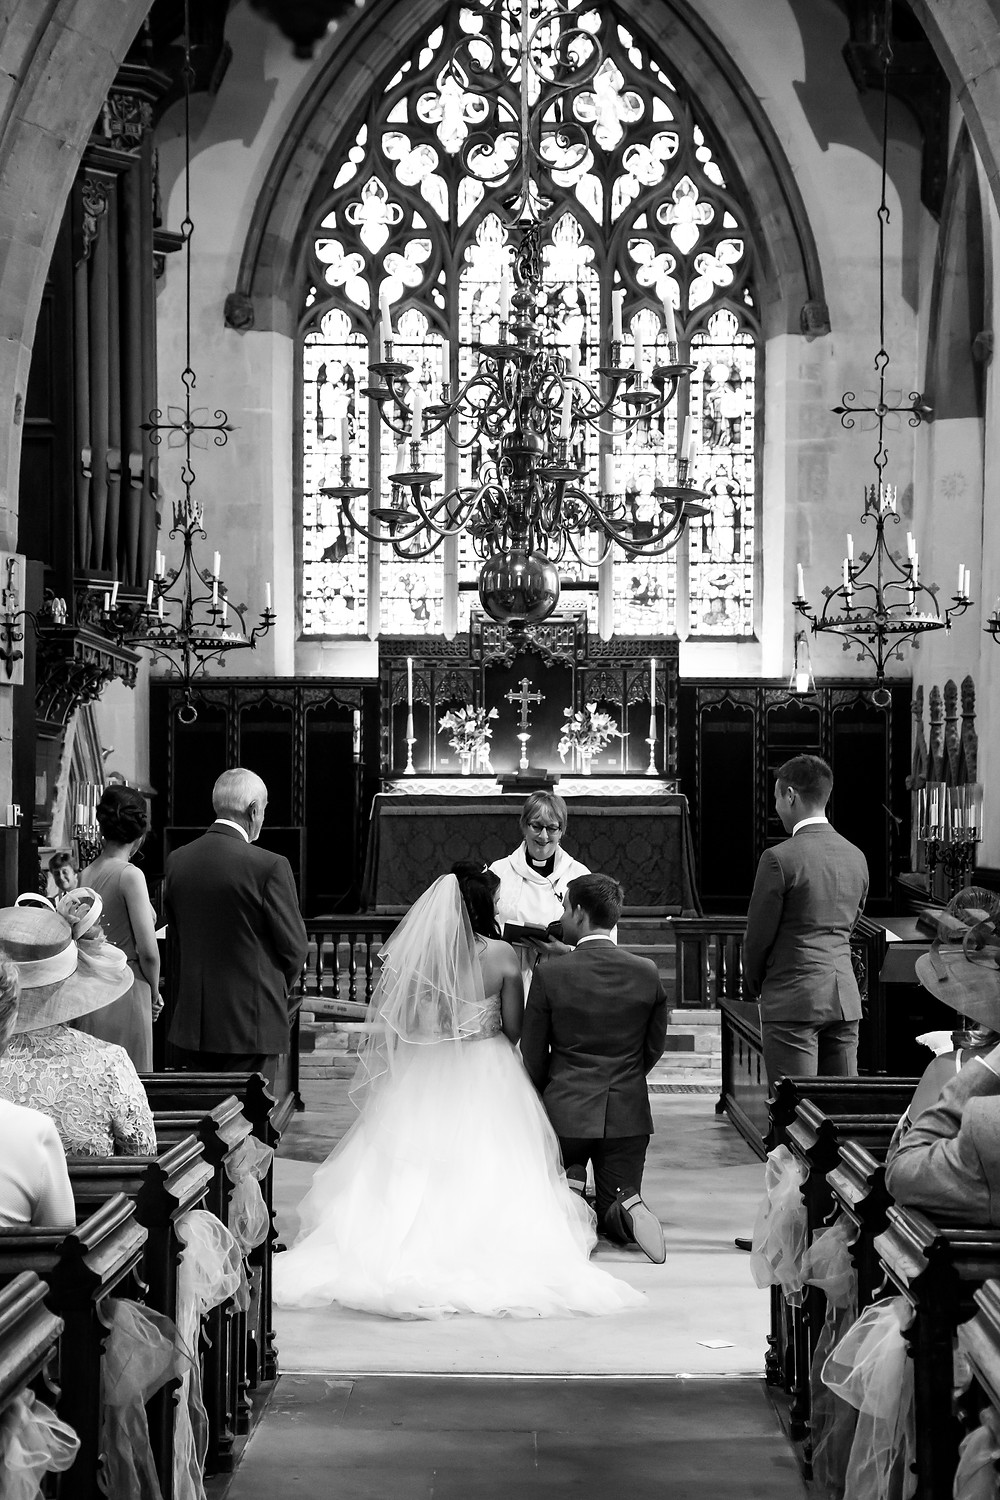 Wedding ceremony at St Mark's Church in Rugby, Warwickshire